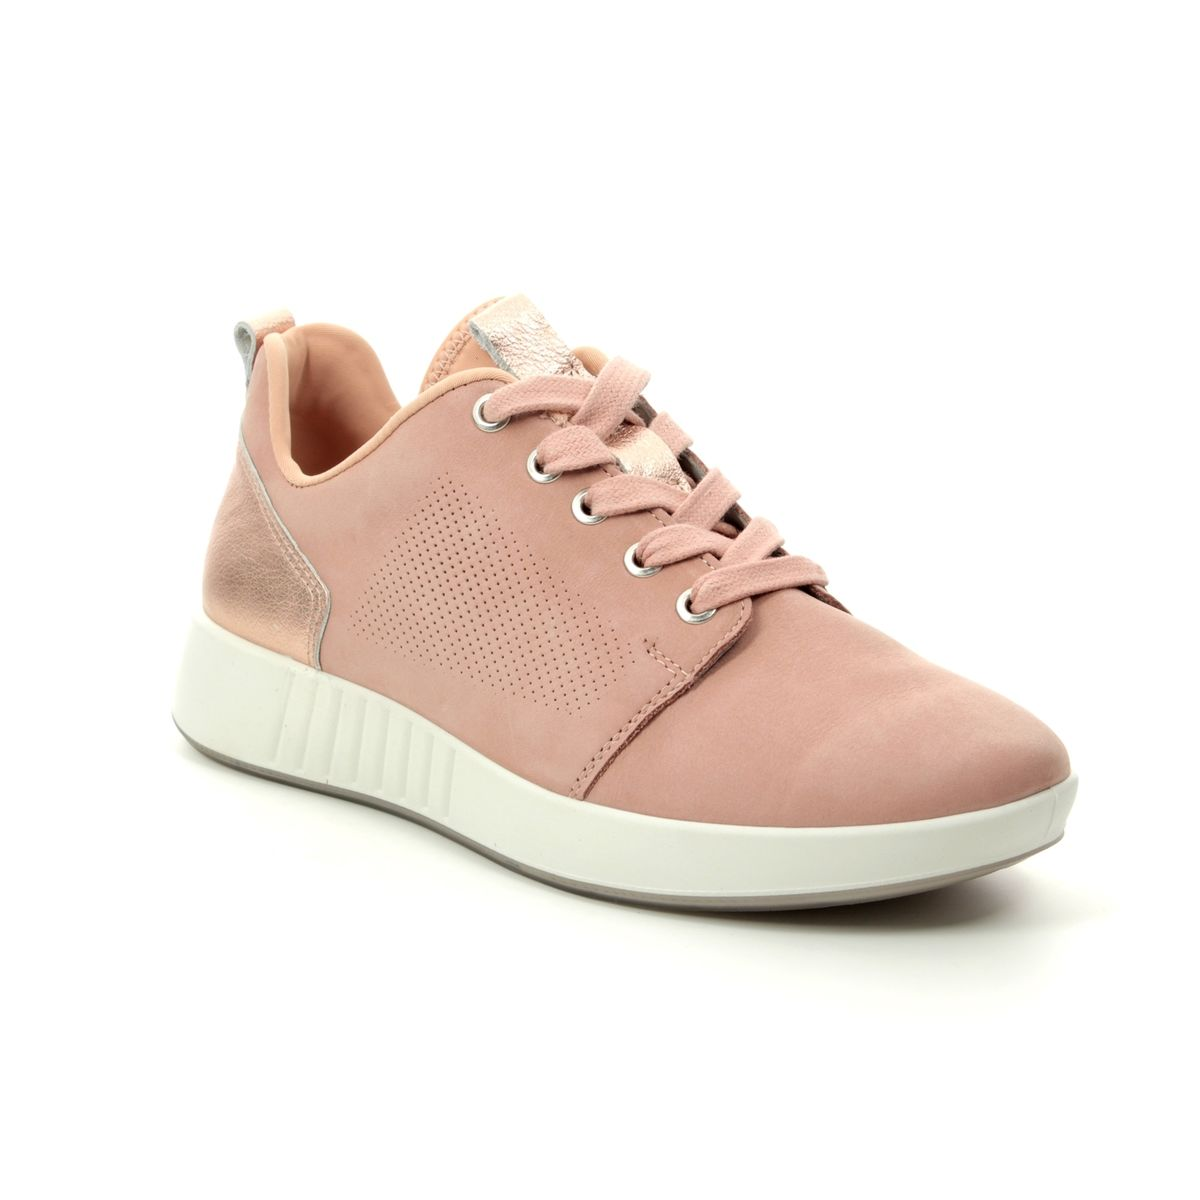 speical offer best shoes good selling 00923/54 Essence at Begg Shoes & Bags